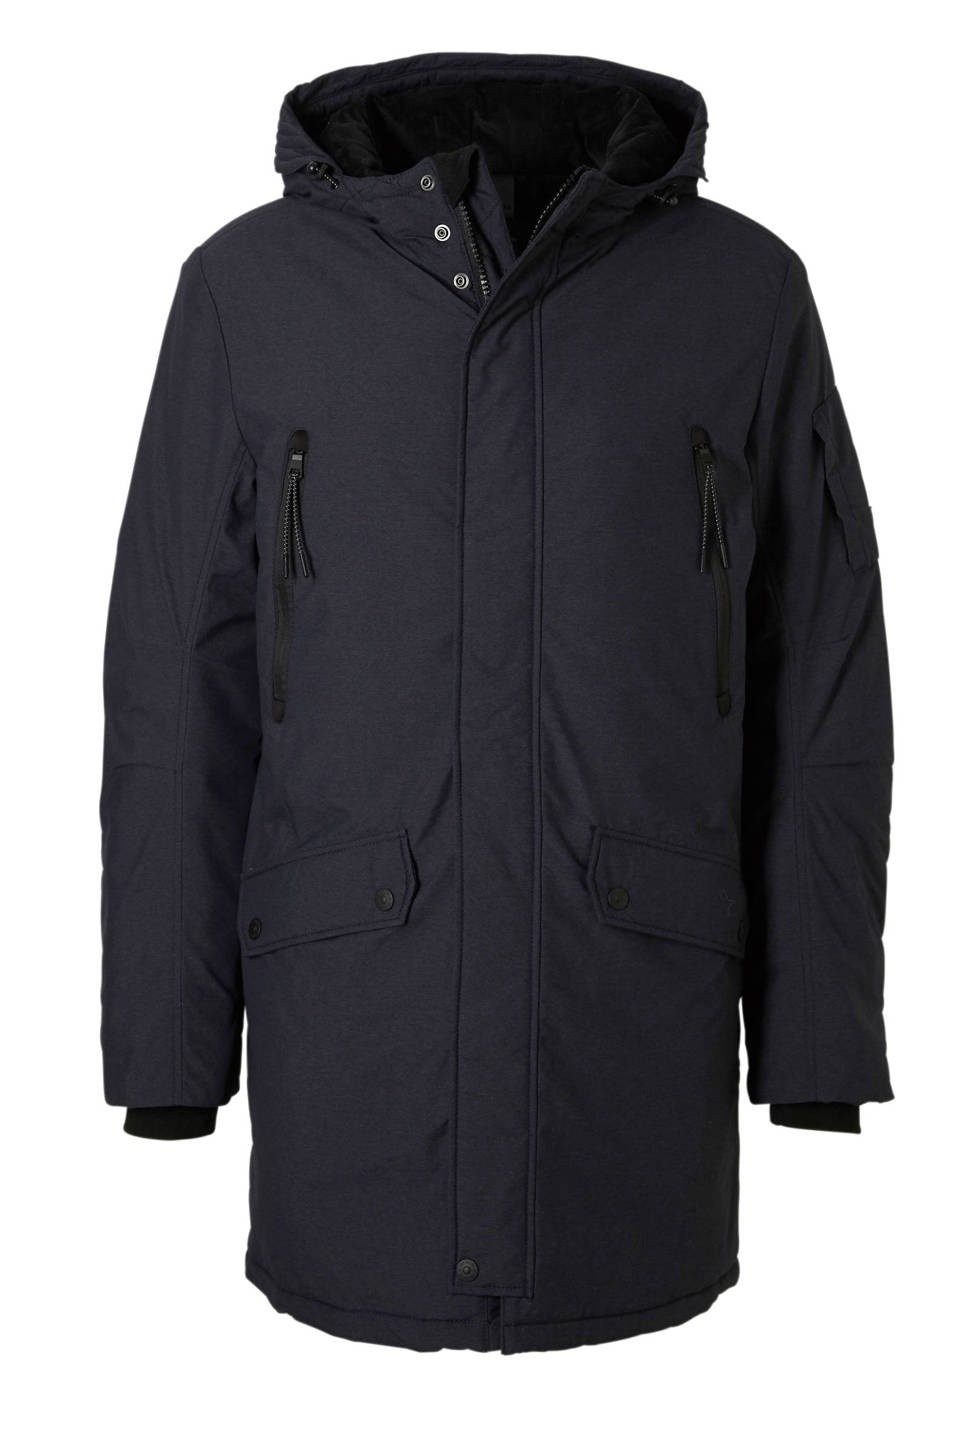 Winterjas Heren Parka.Tom Tailor Heren Winterjas Parka Online Kopen